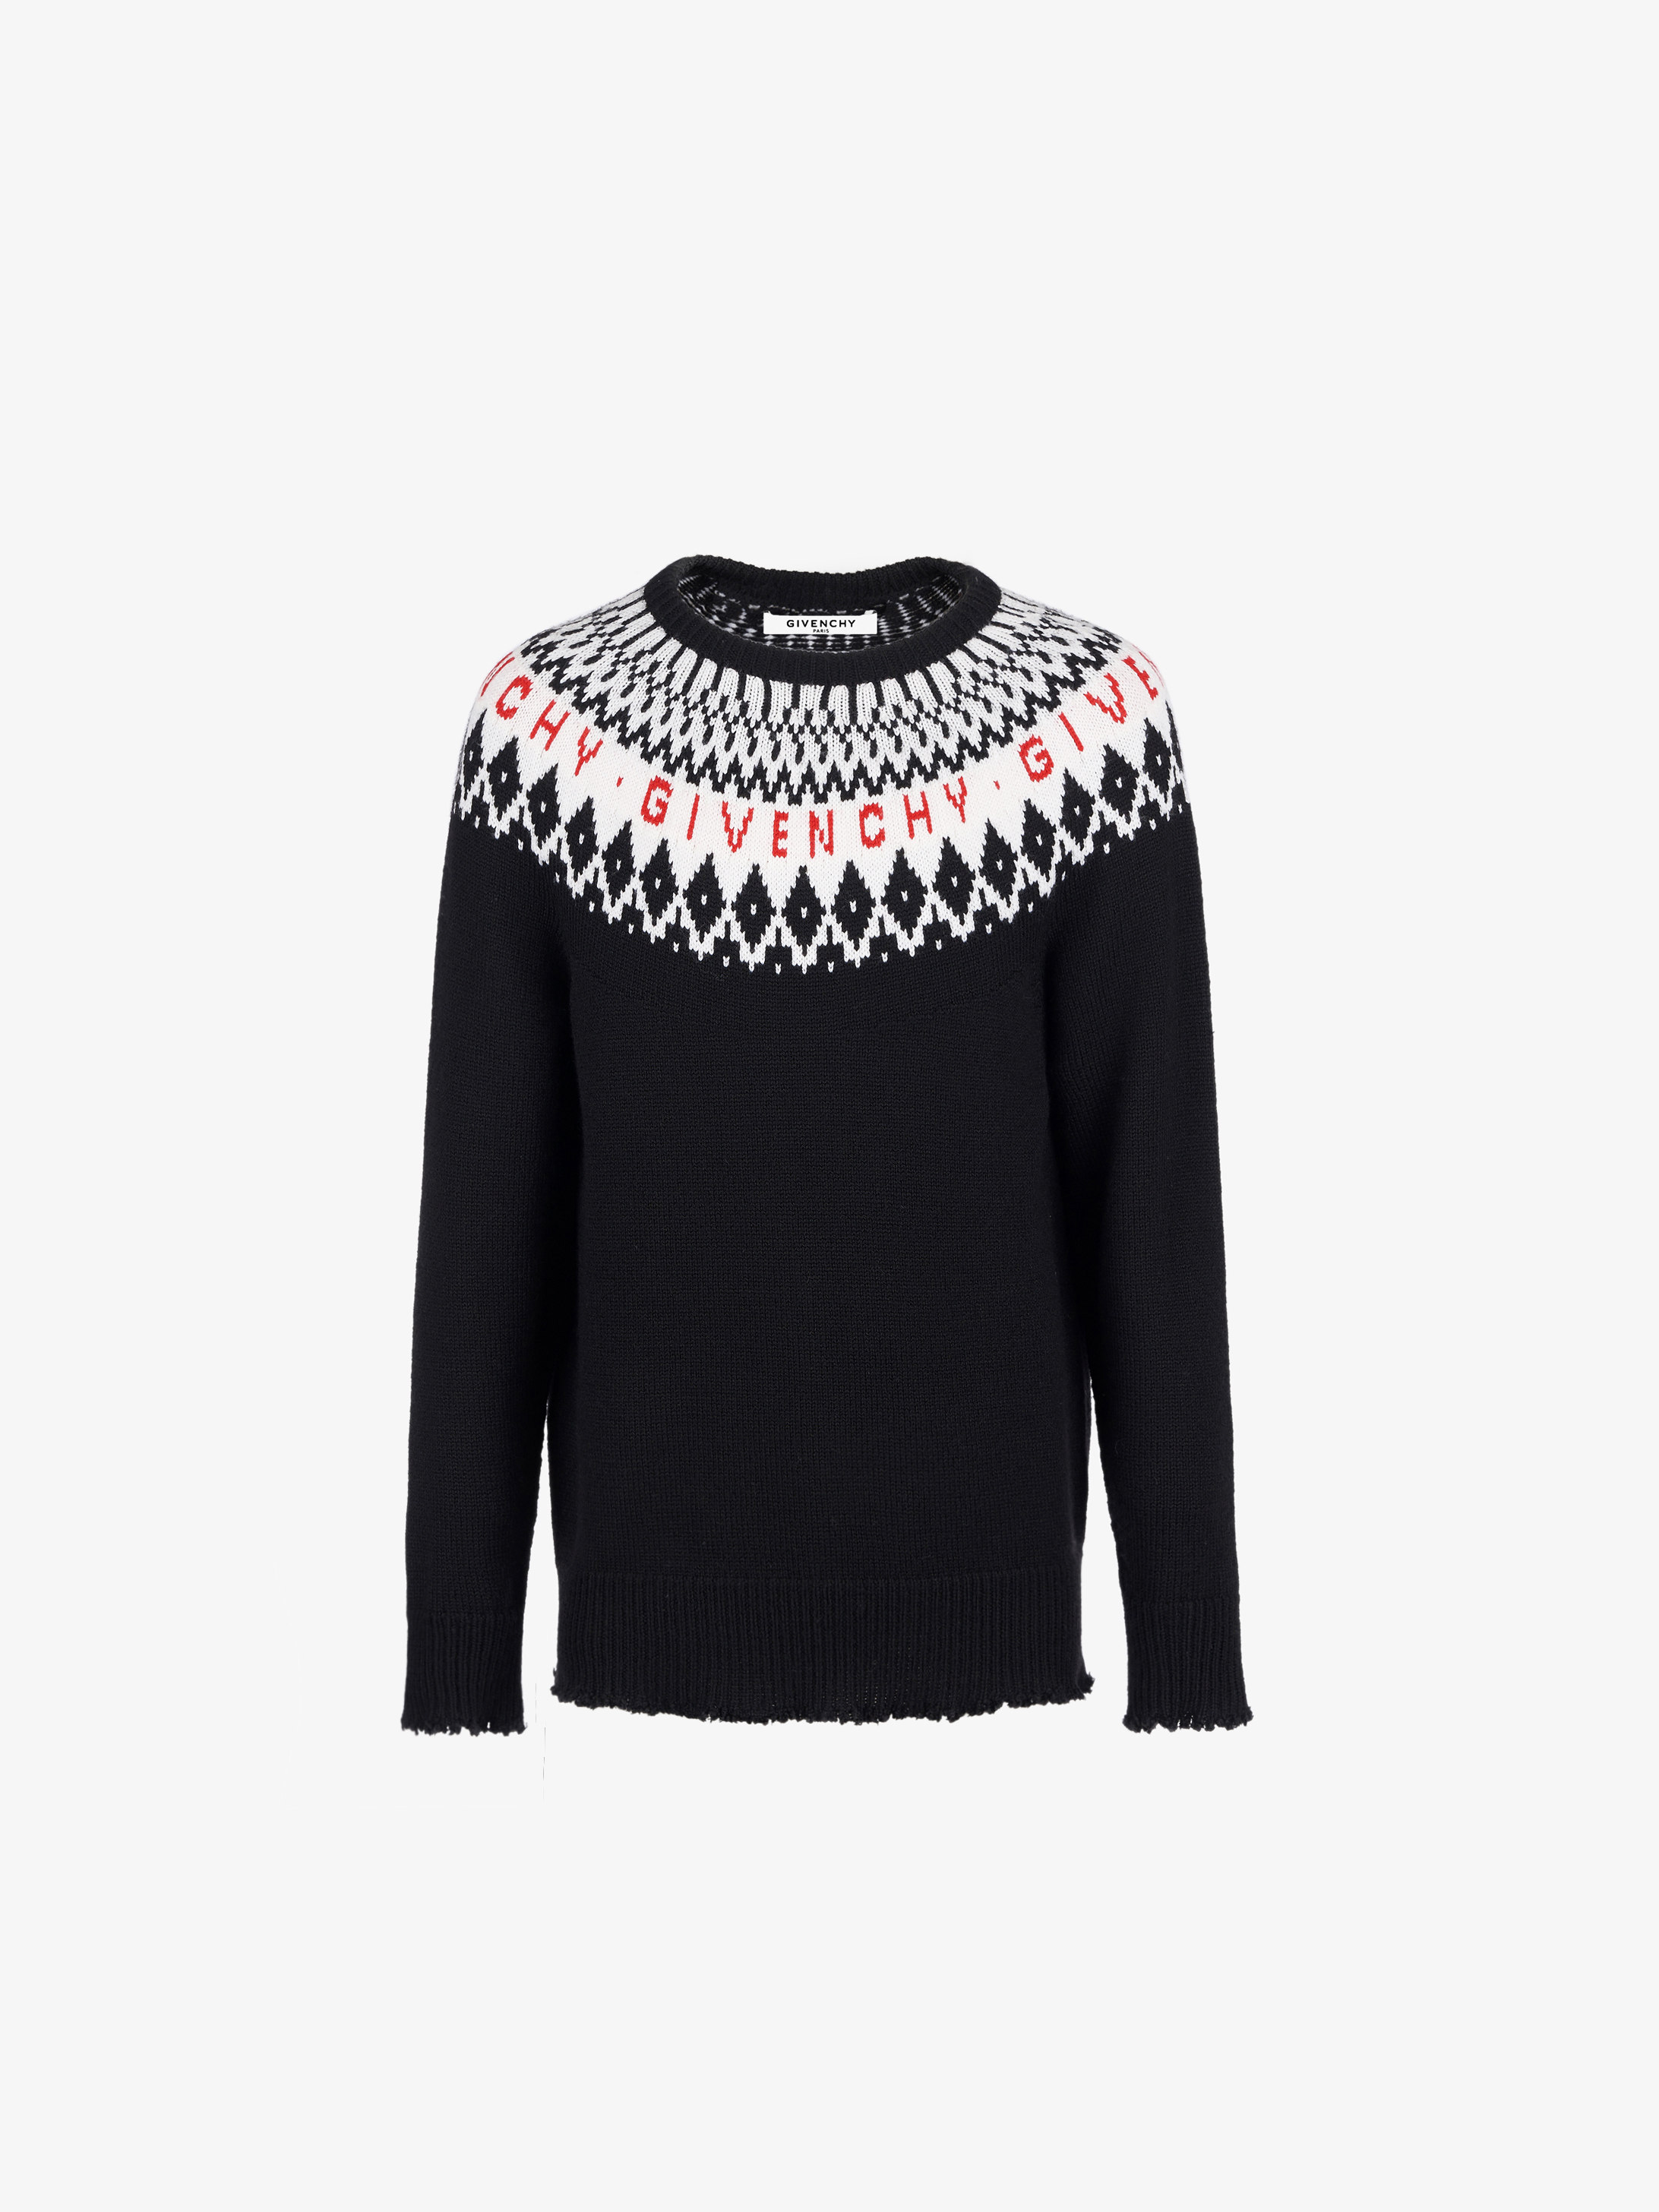 GIVENCHY PARIS jacquard sweater in merinos